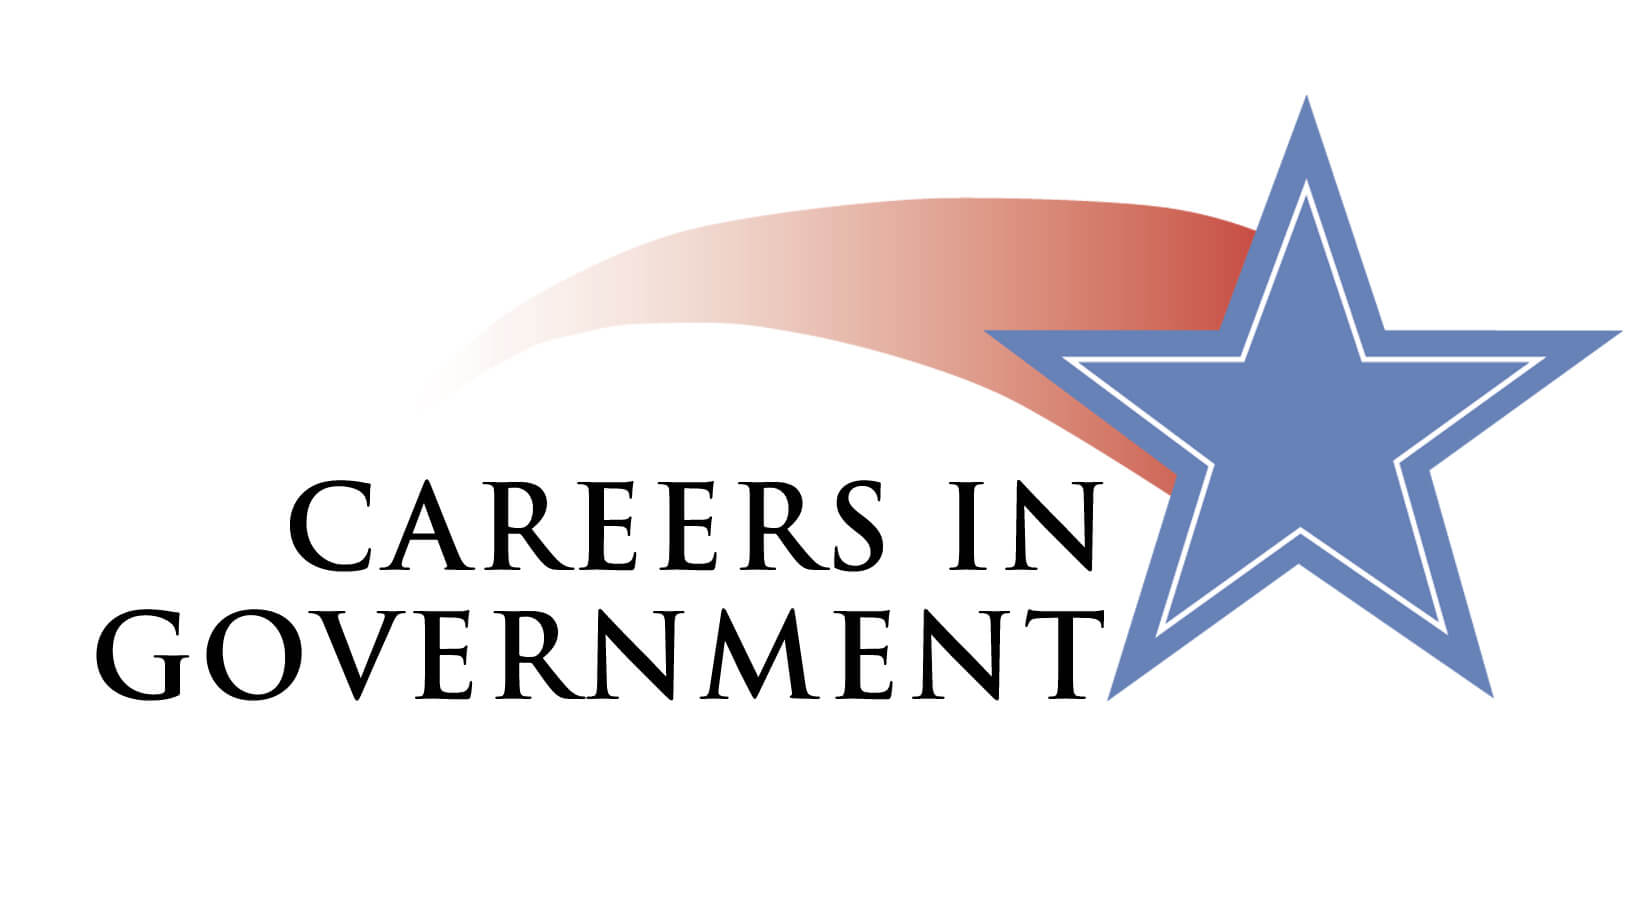 Careers in Government Named 2016 Innovator of the Year